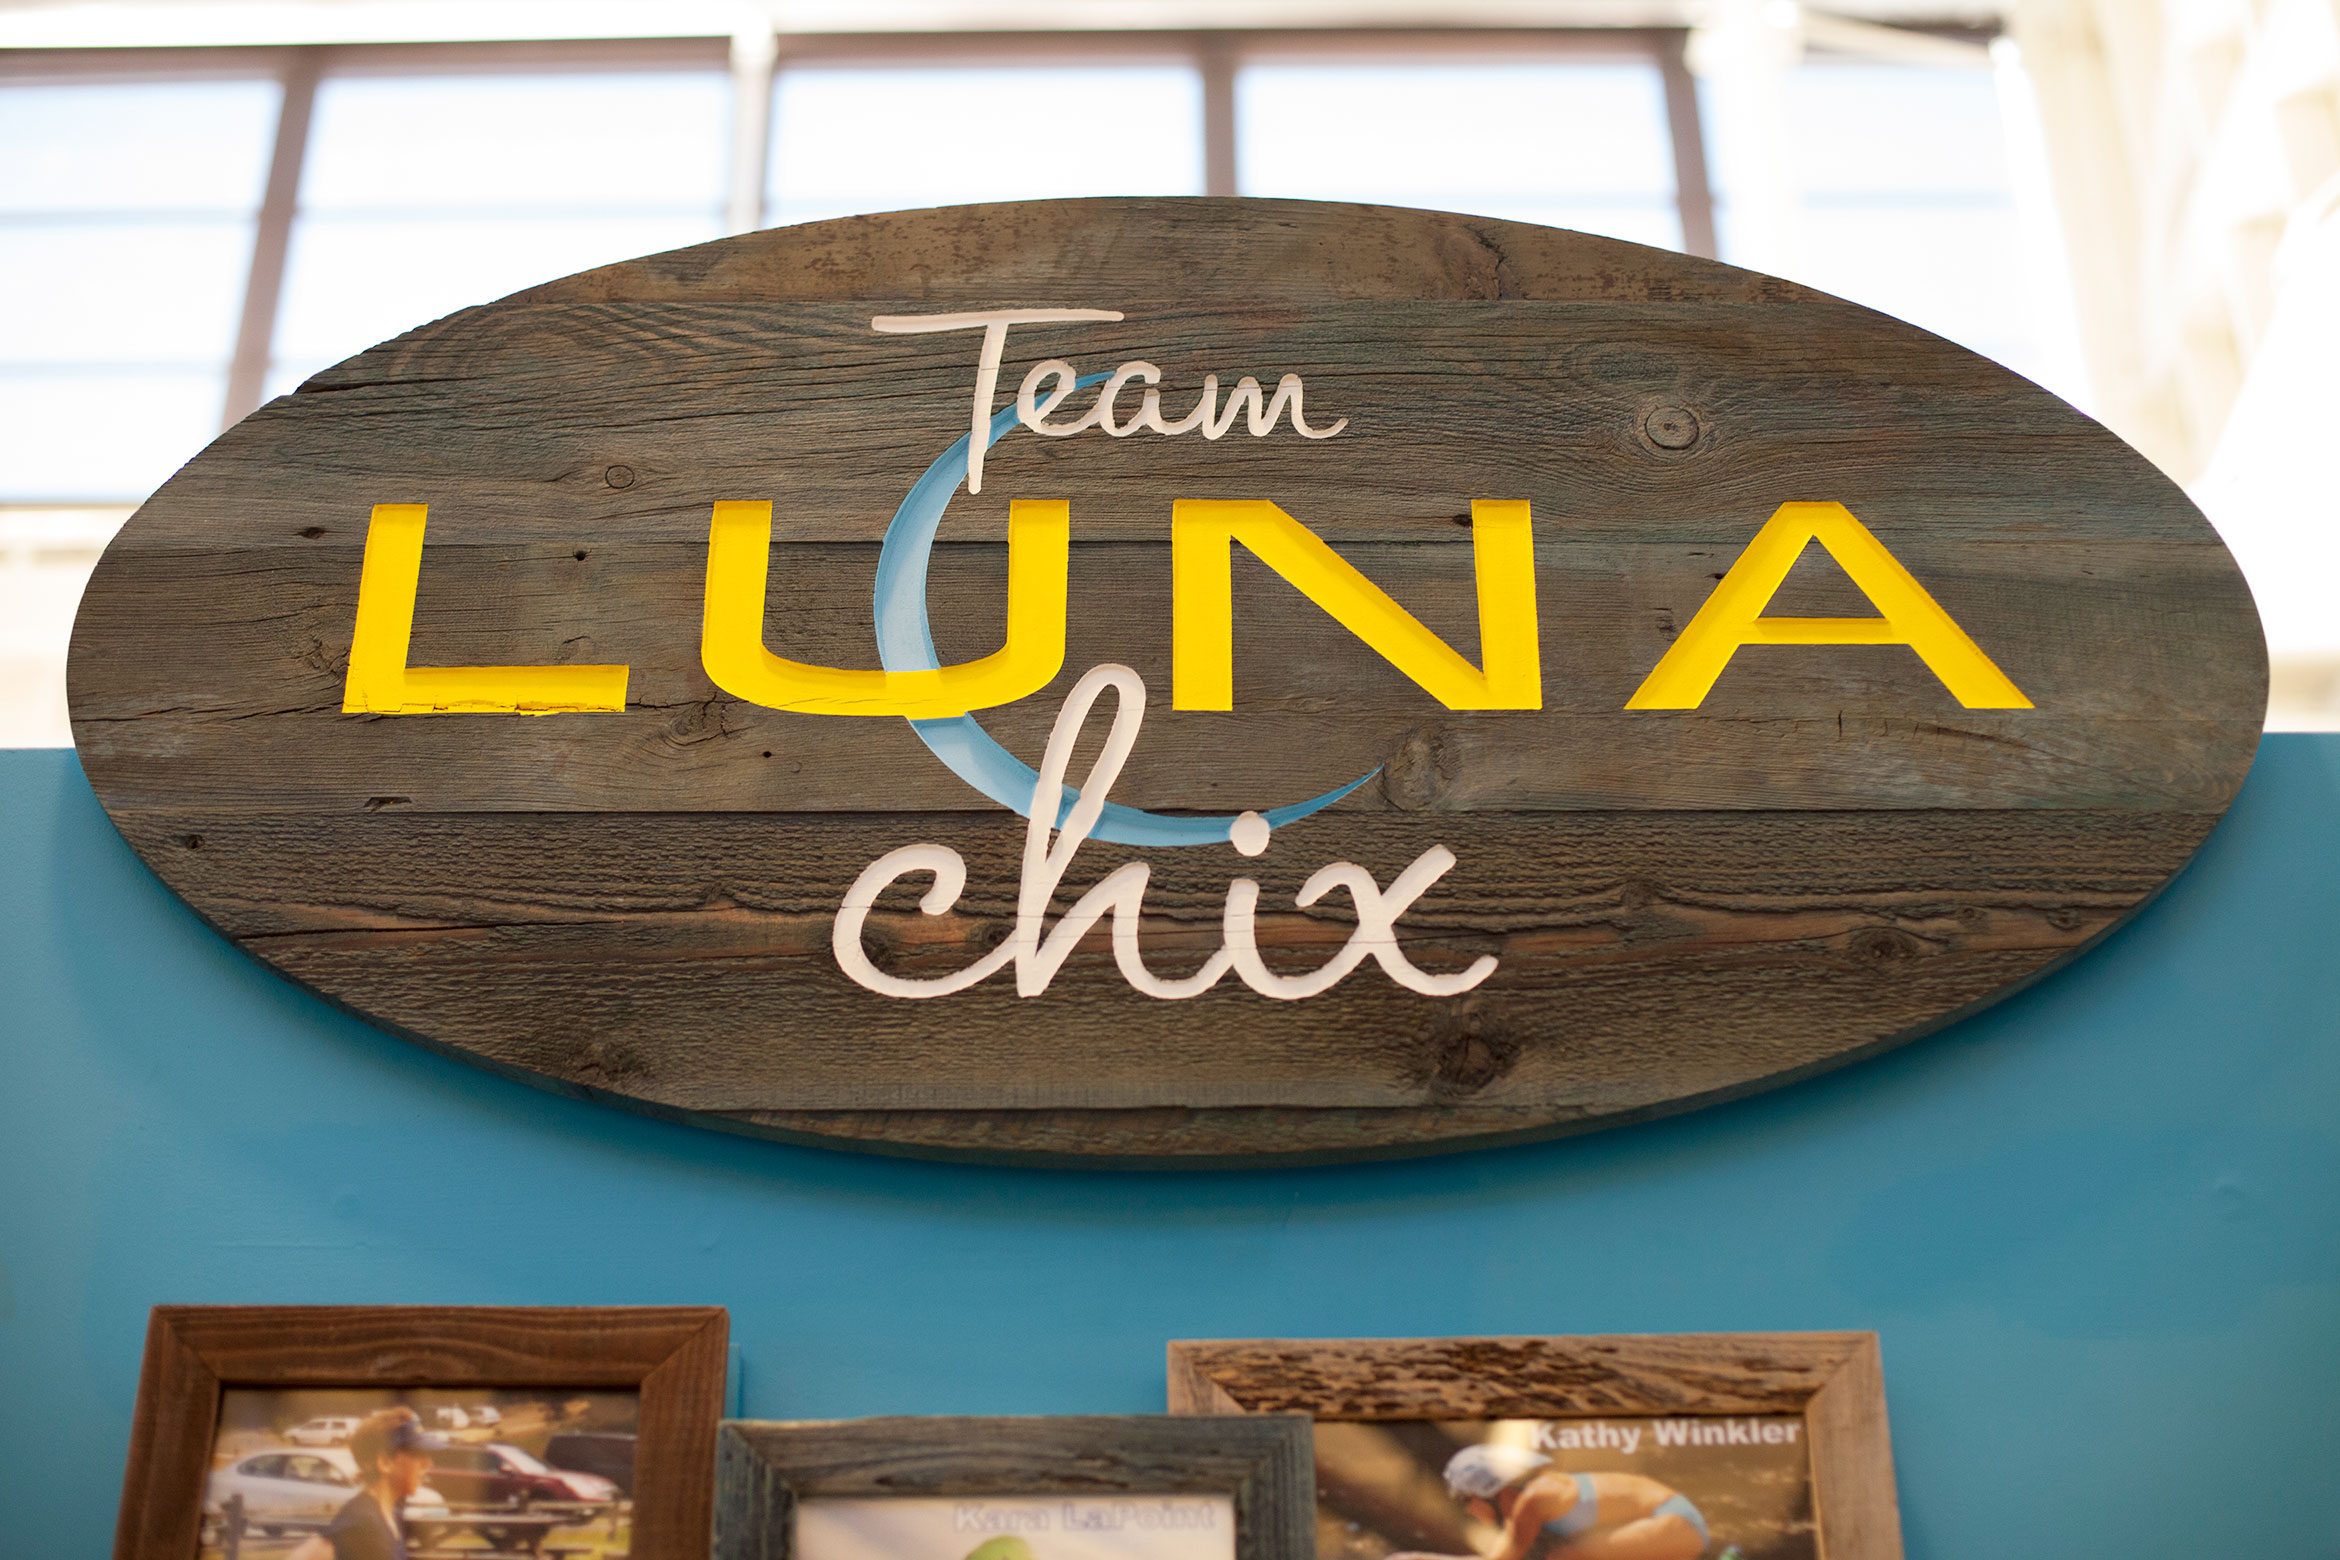 The final Team Luna Chix sign, made on reclaimed boards that were dyed, carved and painted, was exactly the style they wanted.